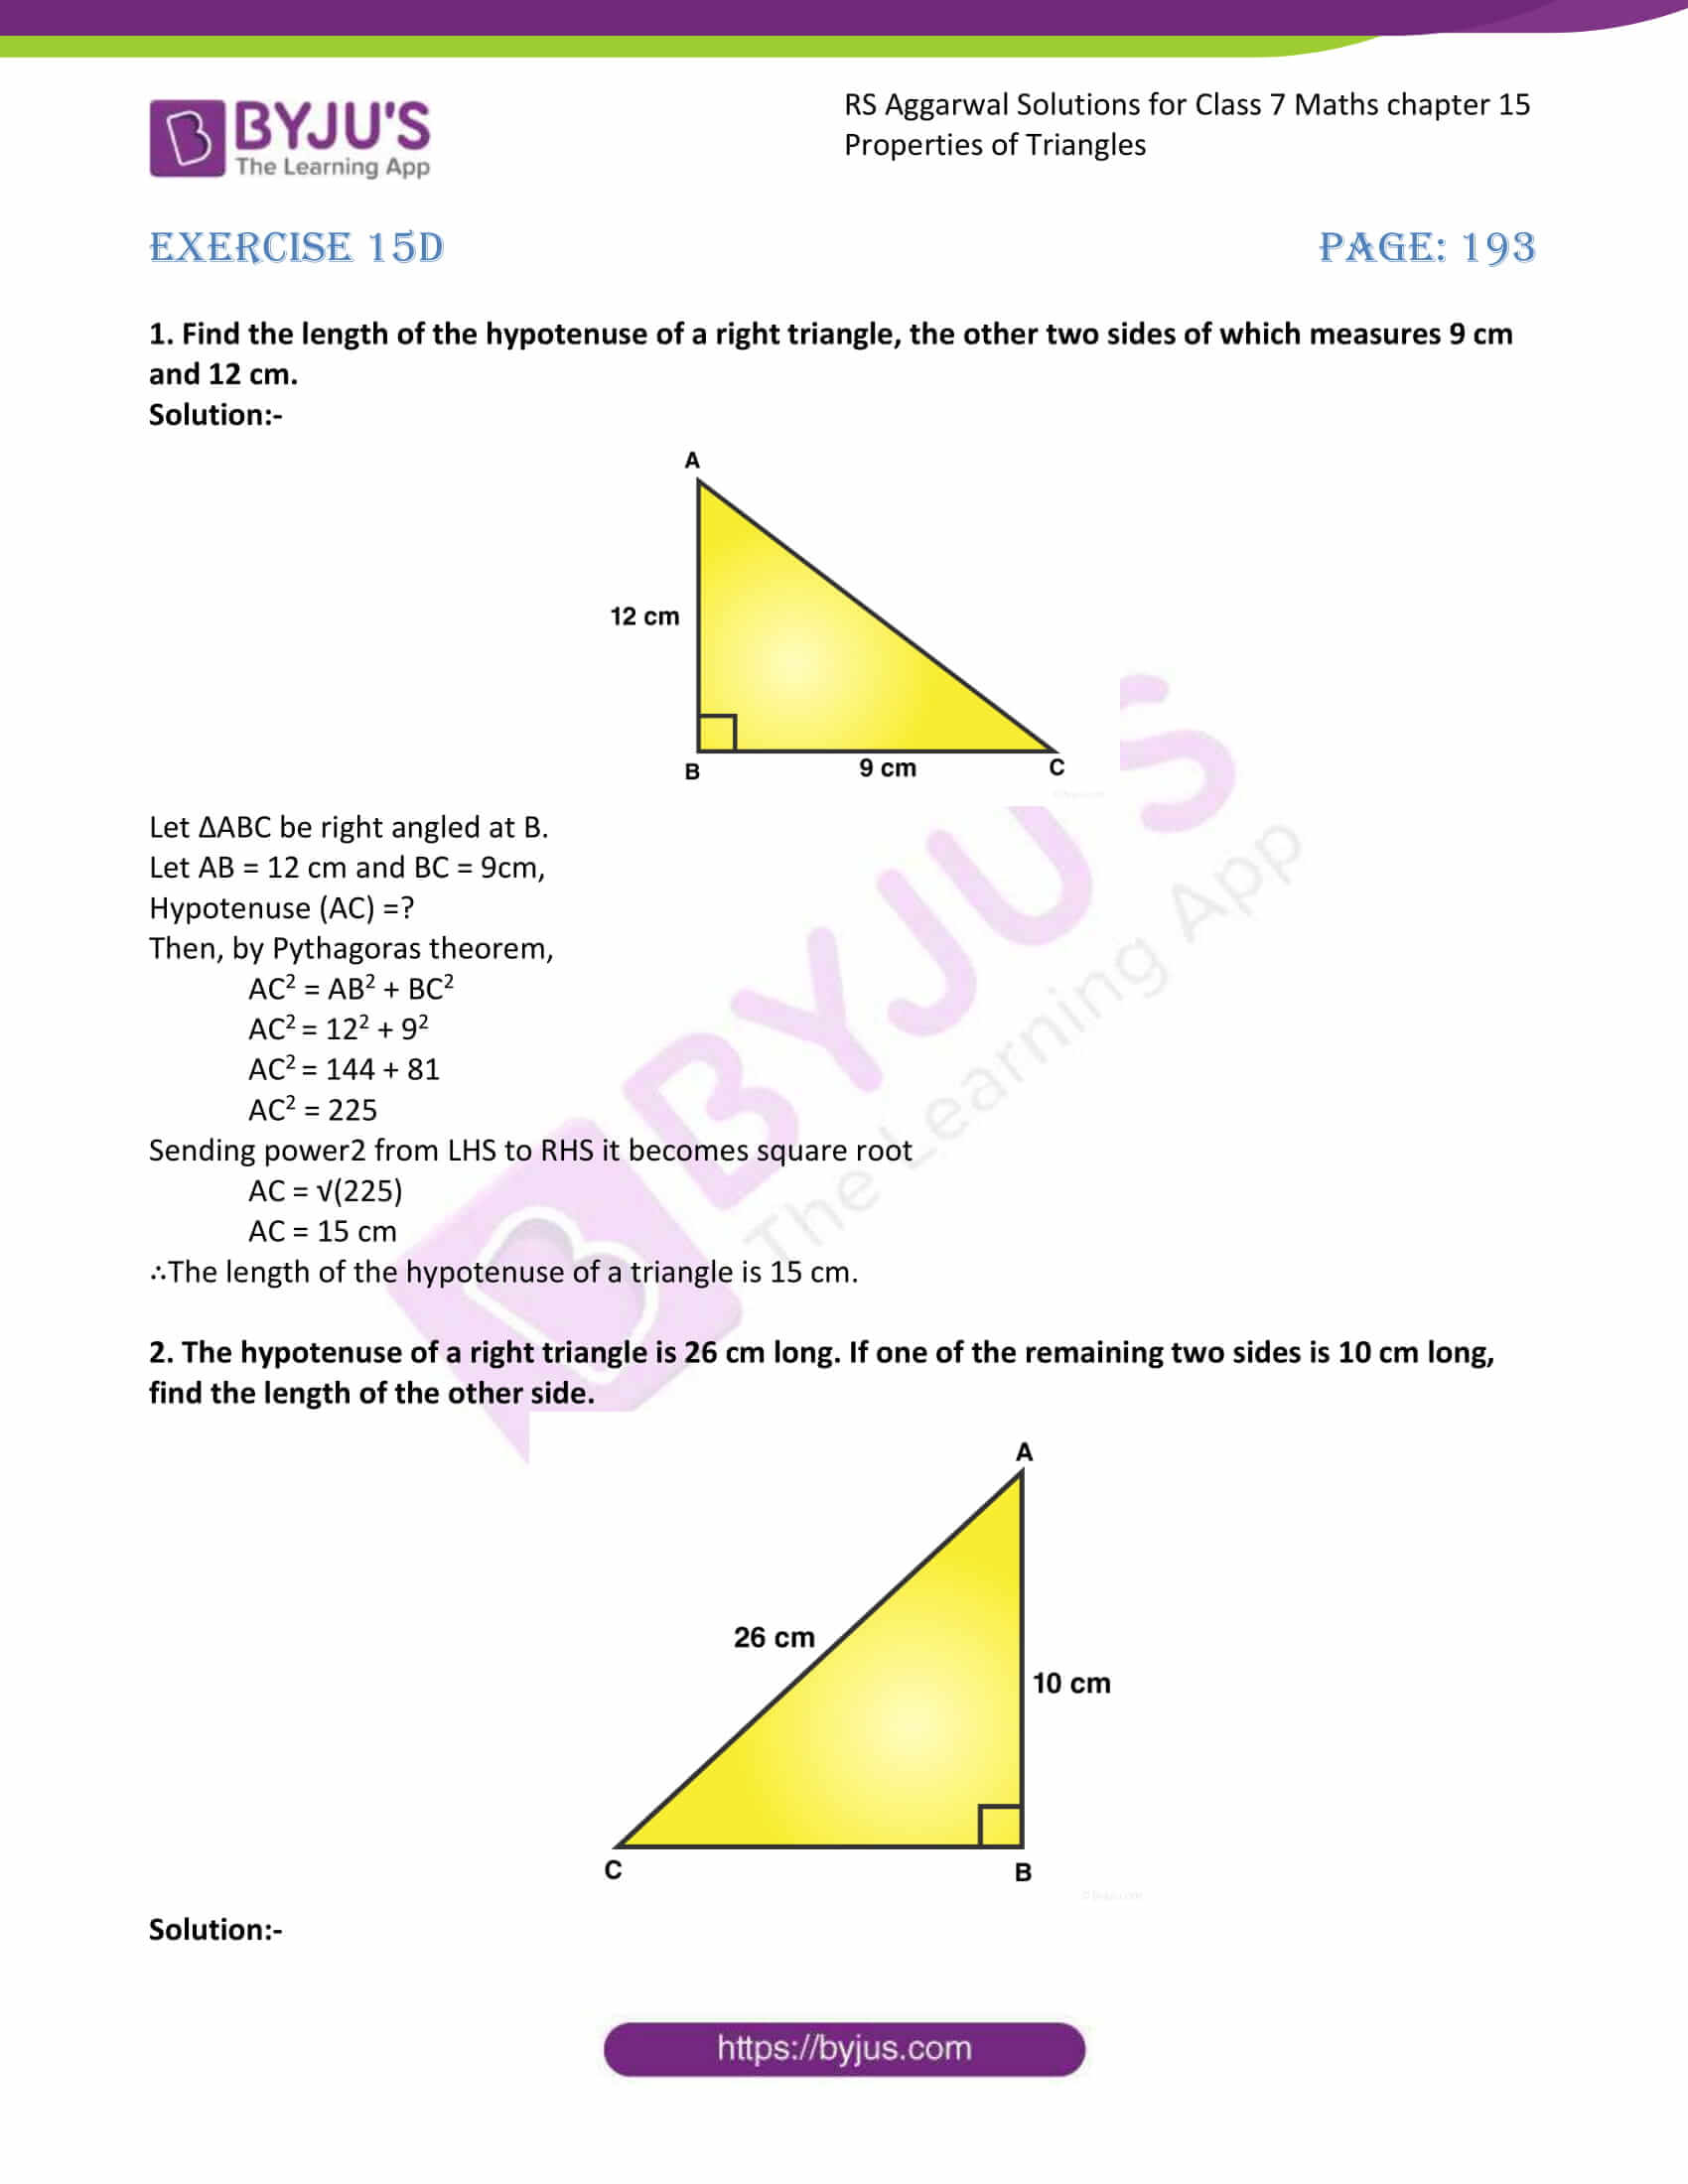 RS Aggarwal Solutions Class 7 Maths Chapter 15 Free Solutions 09